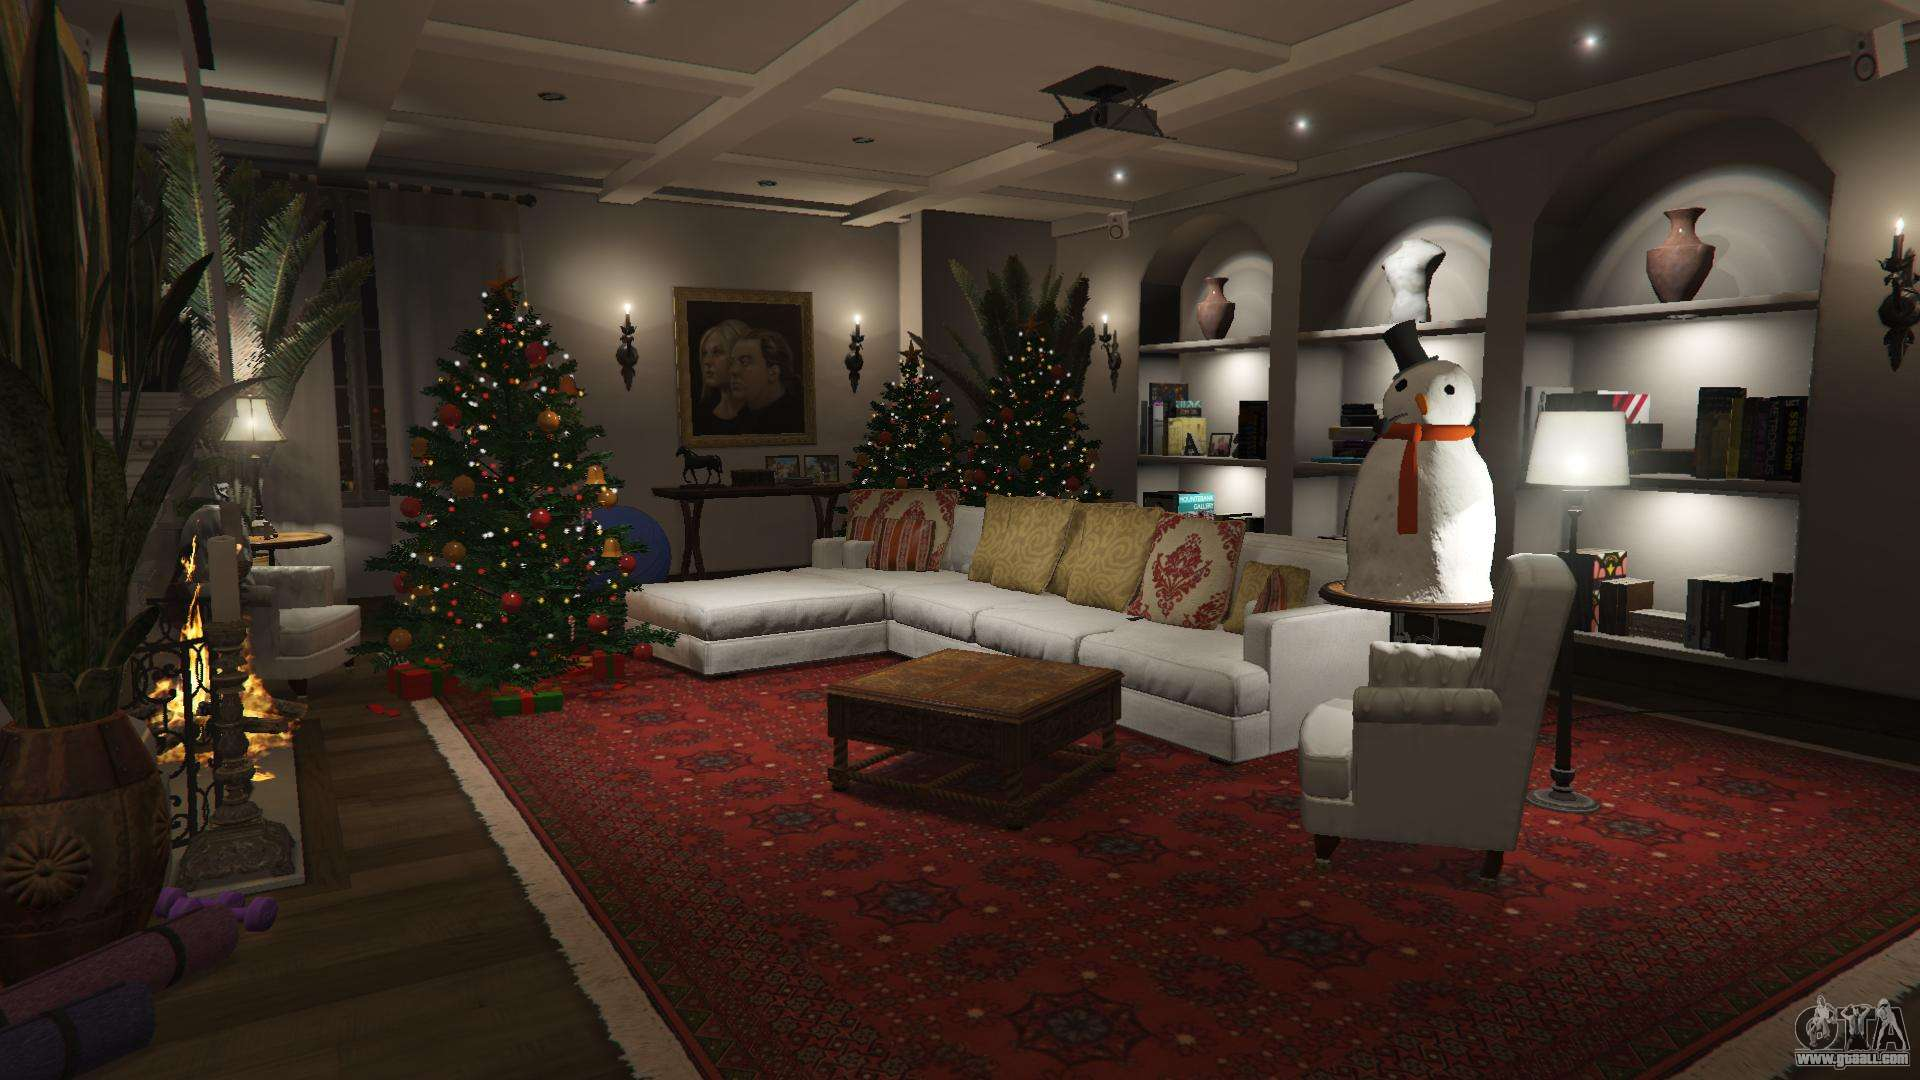 gta 5 christmas decorations for michaels house fifth screenshot - Michaels Christmas Decorations 2015